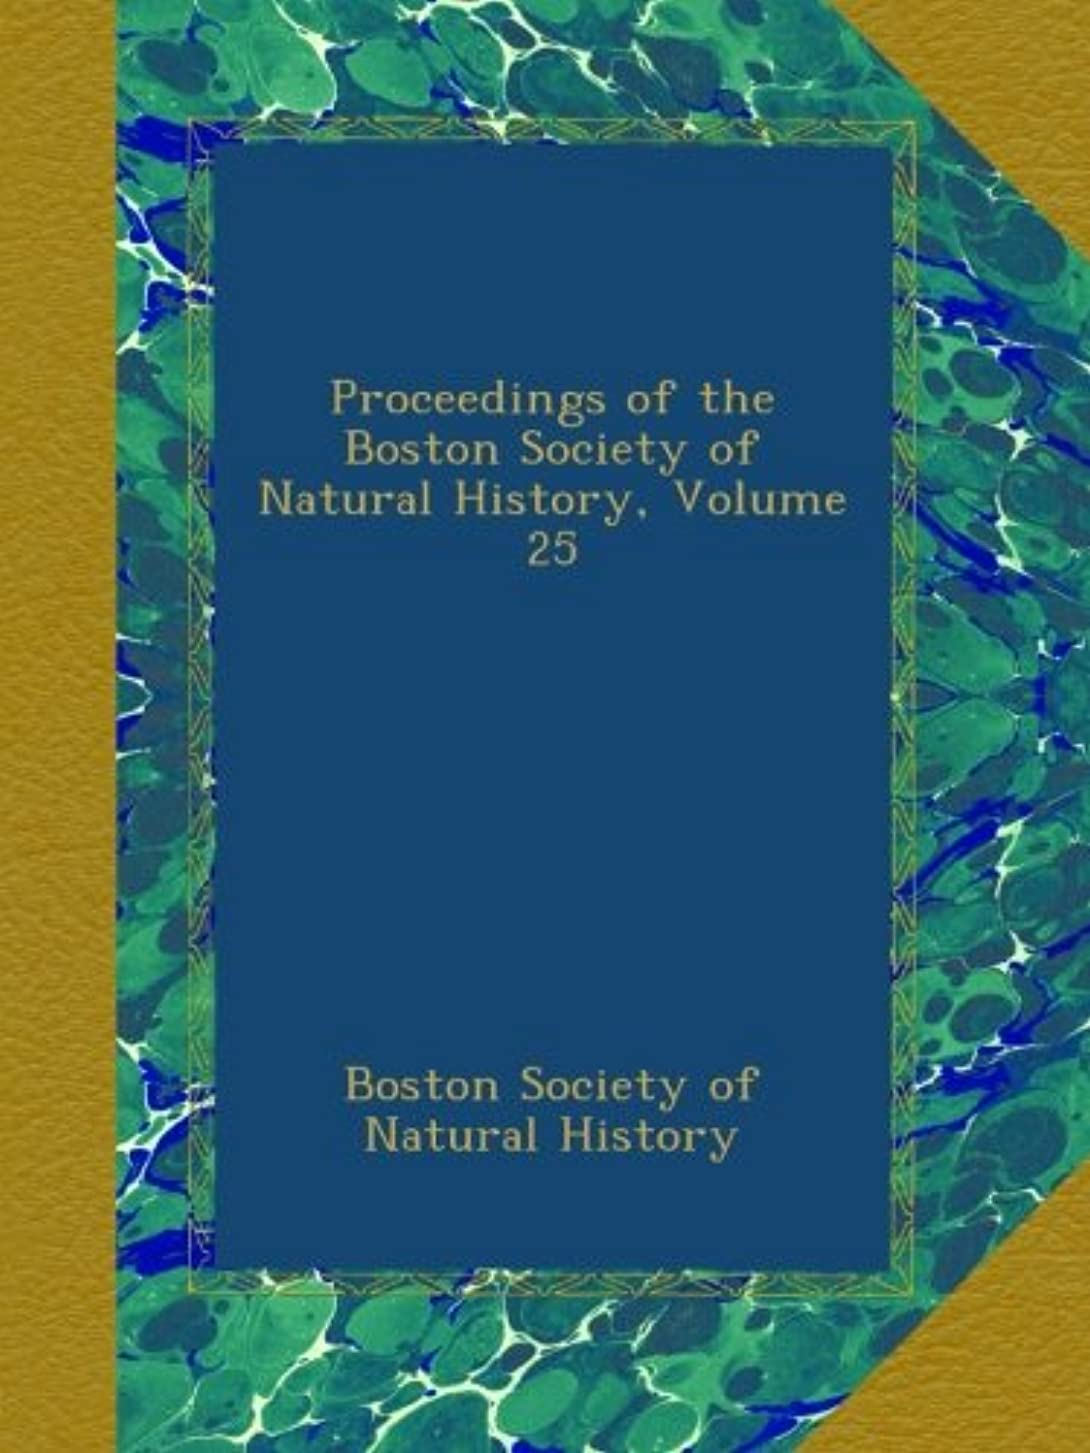 出撃者励起柔らかい足Proceedings of the Boston Society of Natural History, Volume 25